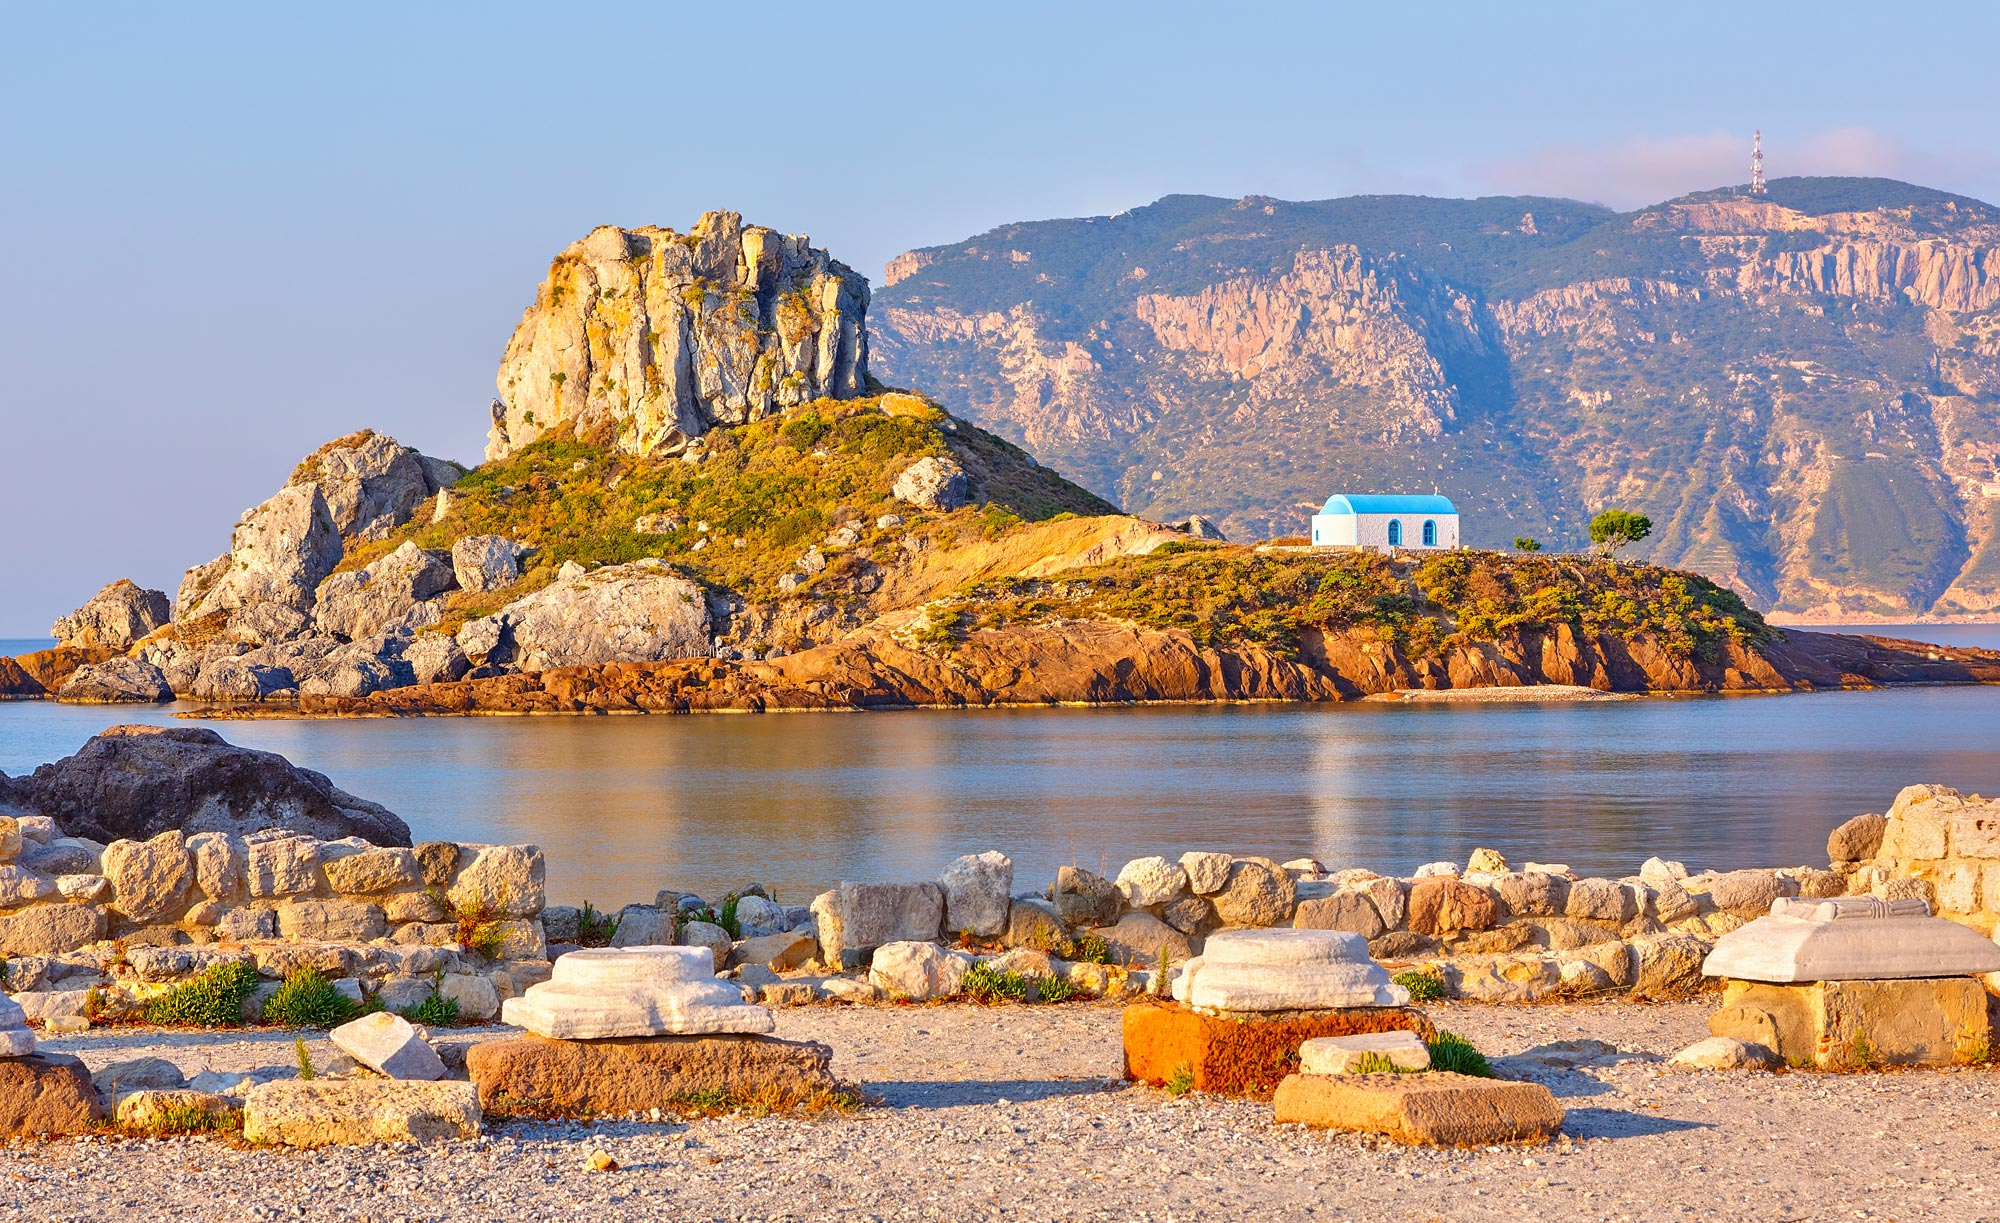 Kos Island: 5 Reasons to Visit the Birthplace of Hippocrates